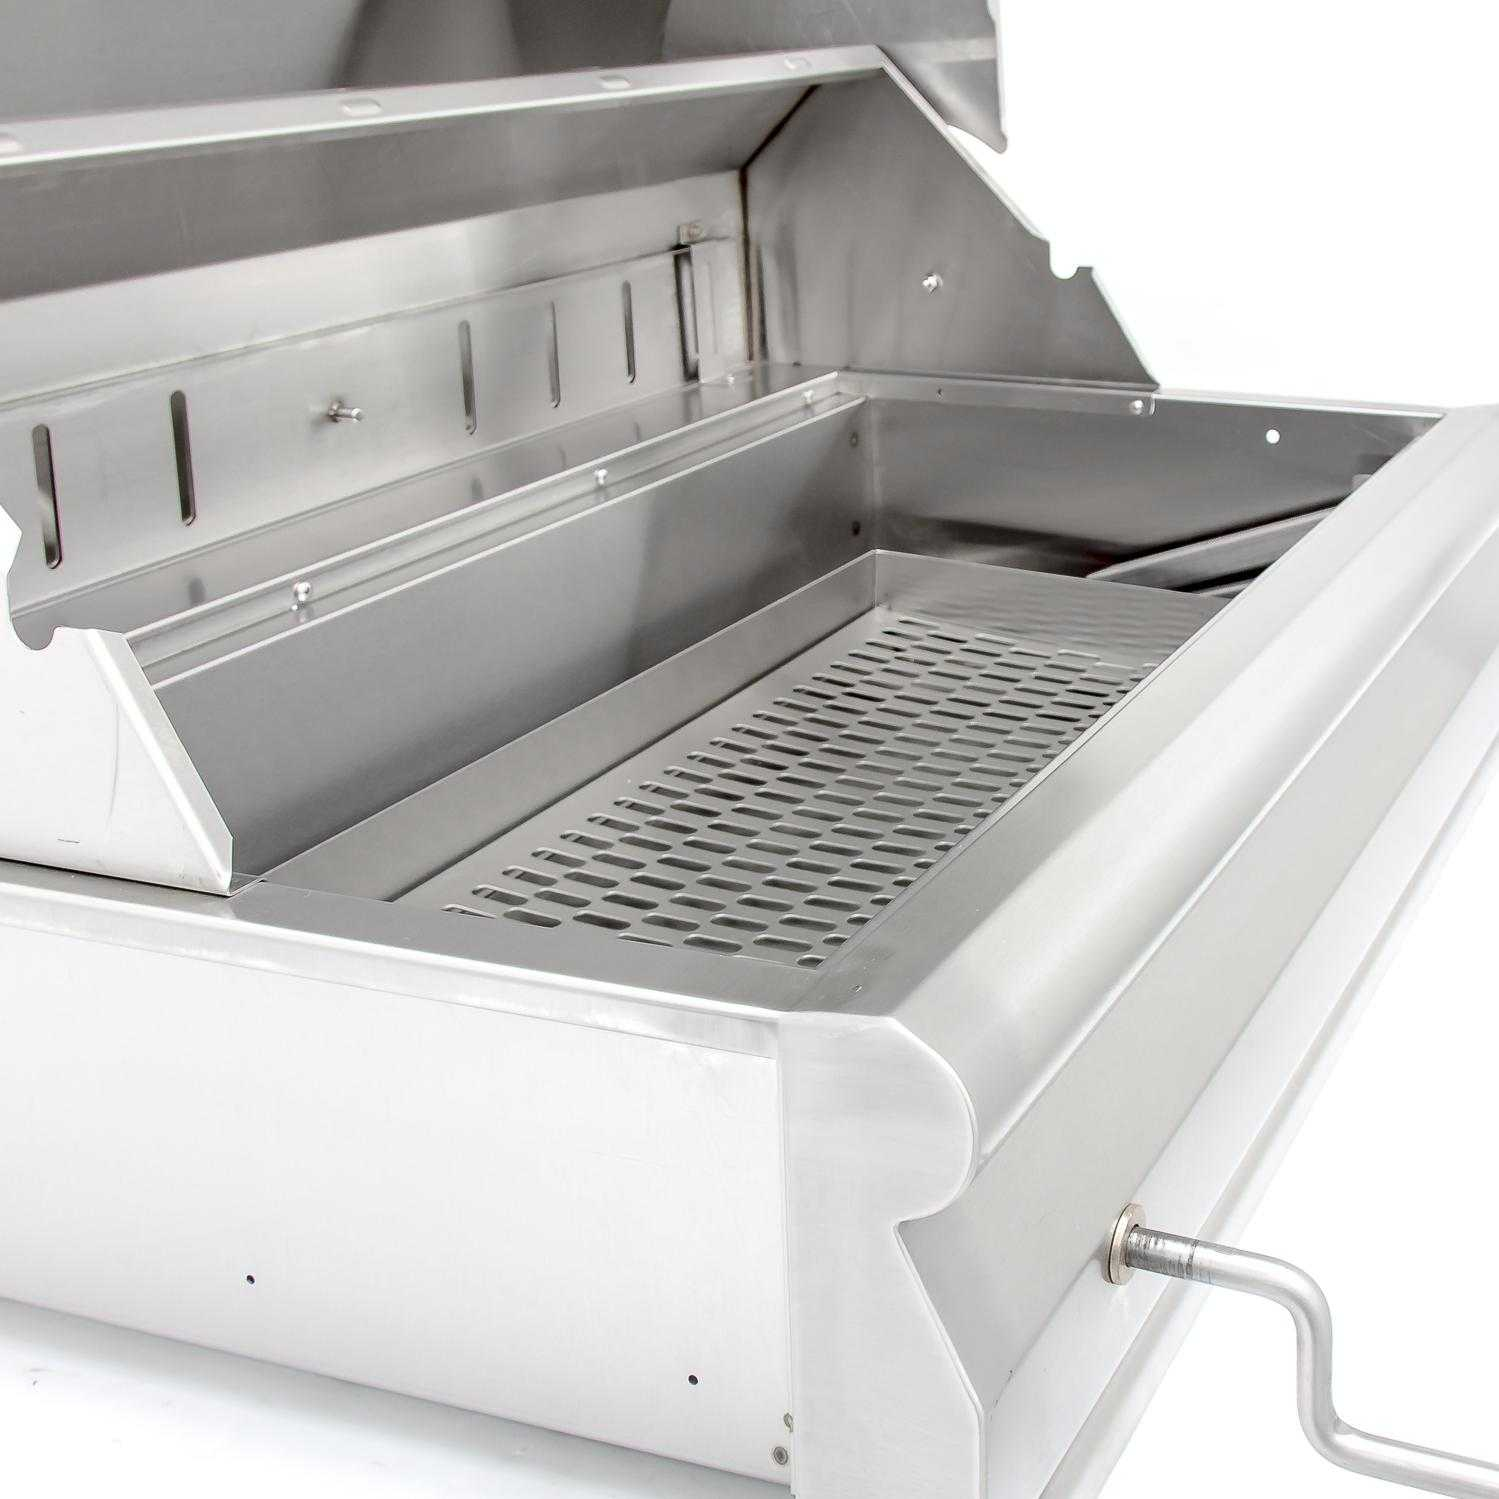 Blaze 32 Inch Built In Stainless Steel Charcoal Grill With Adjustable ...